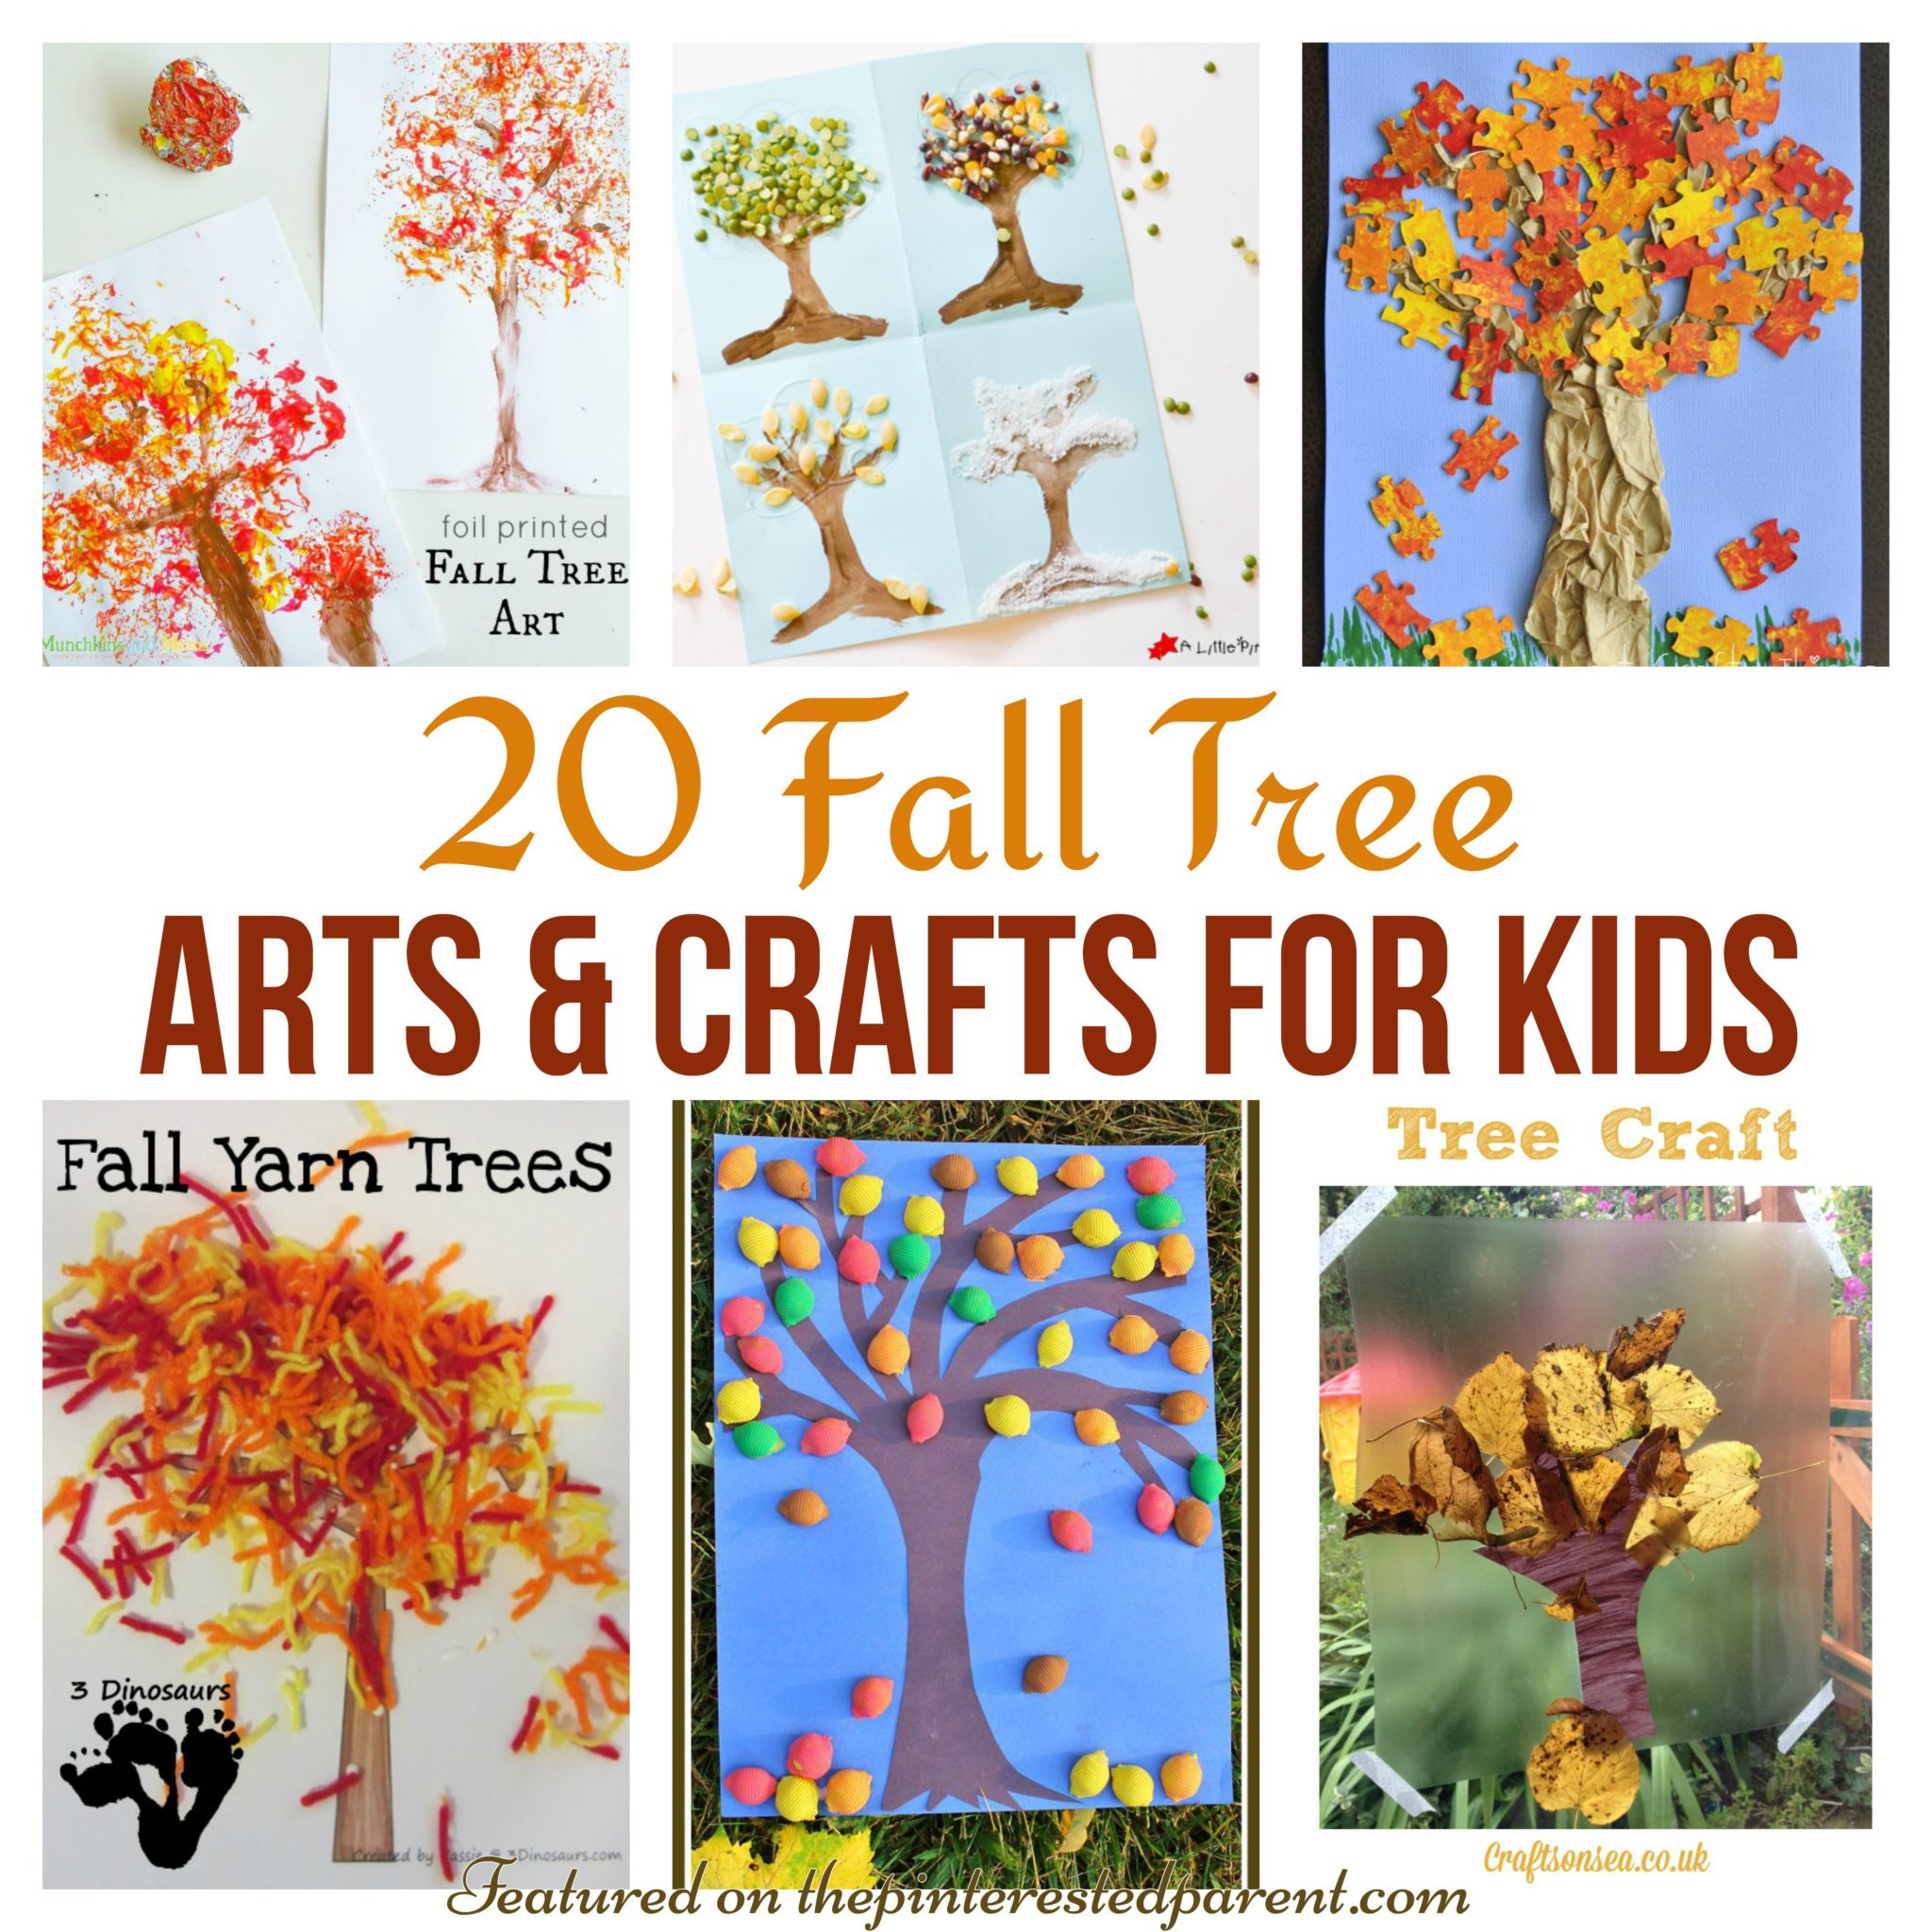 Fall Art Project For Kids  20 Fall Tree Arts & Crafts Ideas For Kids – The